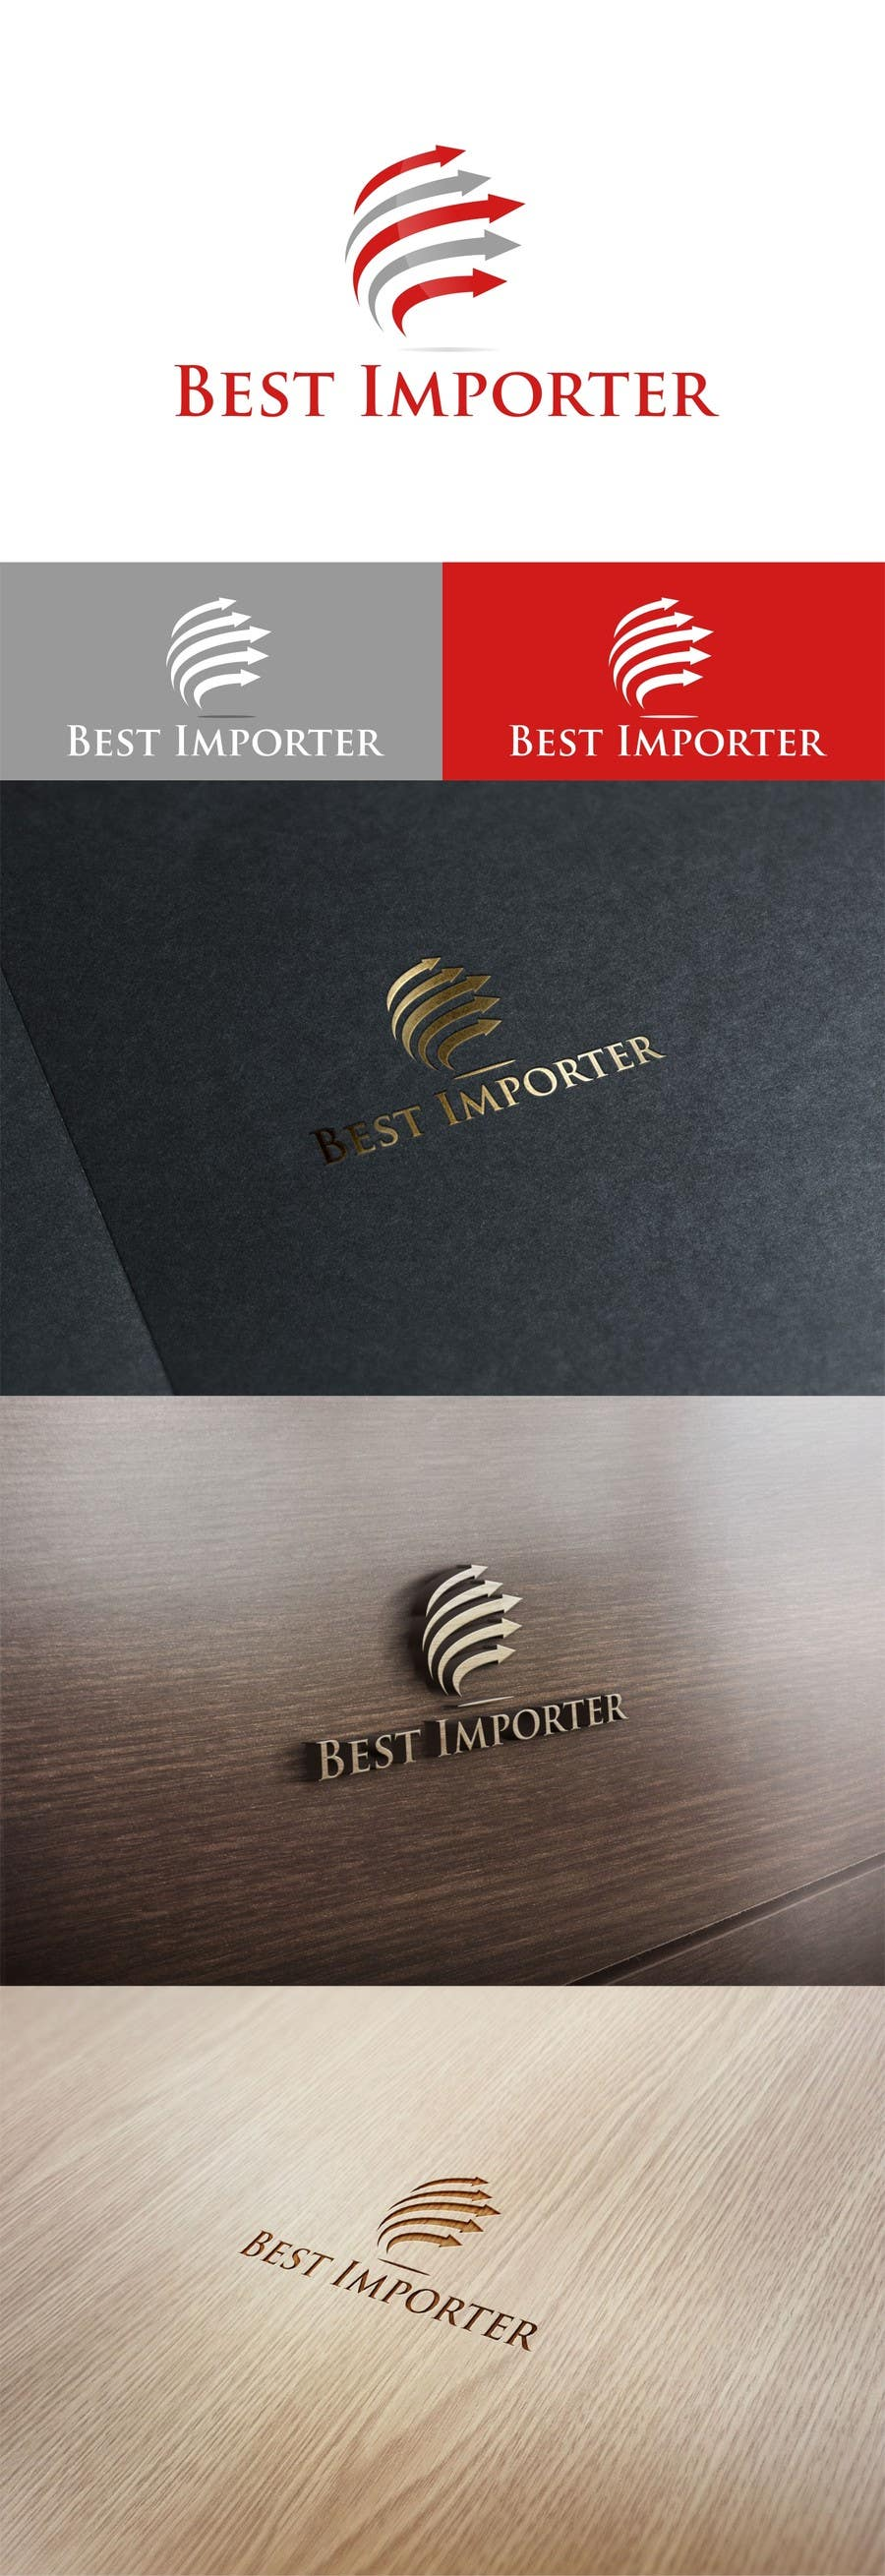 #40 for Design a Logo for an Importer / Wholesaler Company by creativodezigns